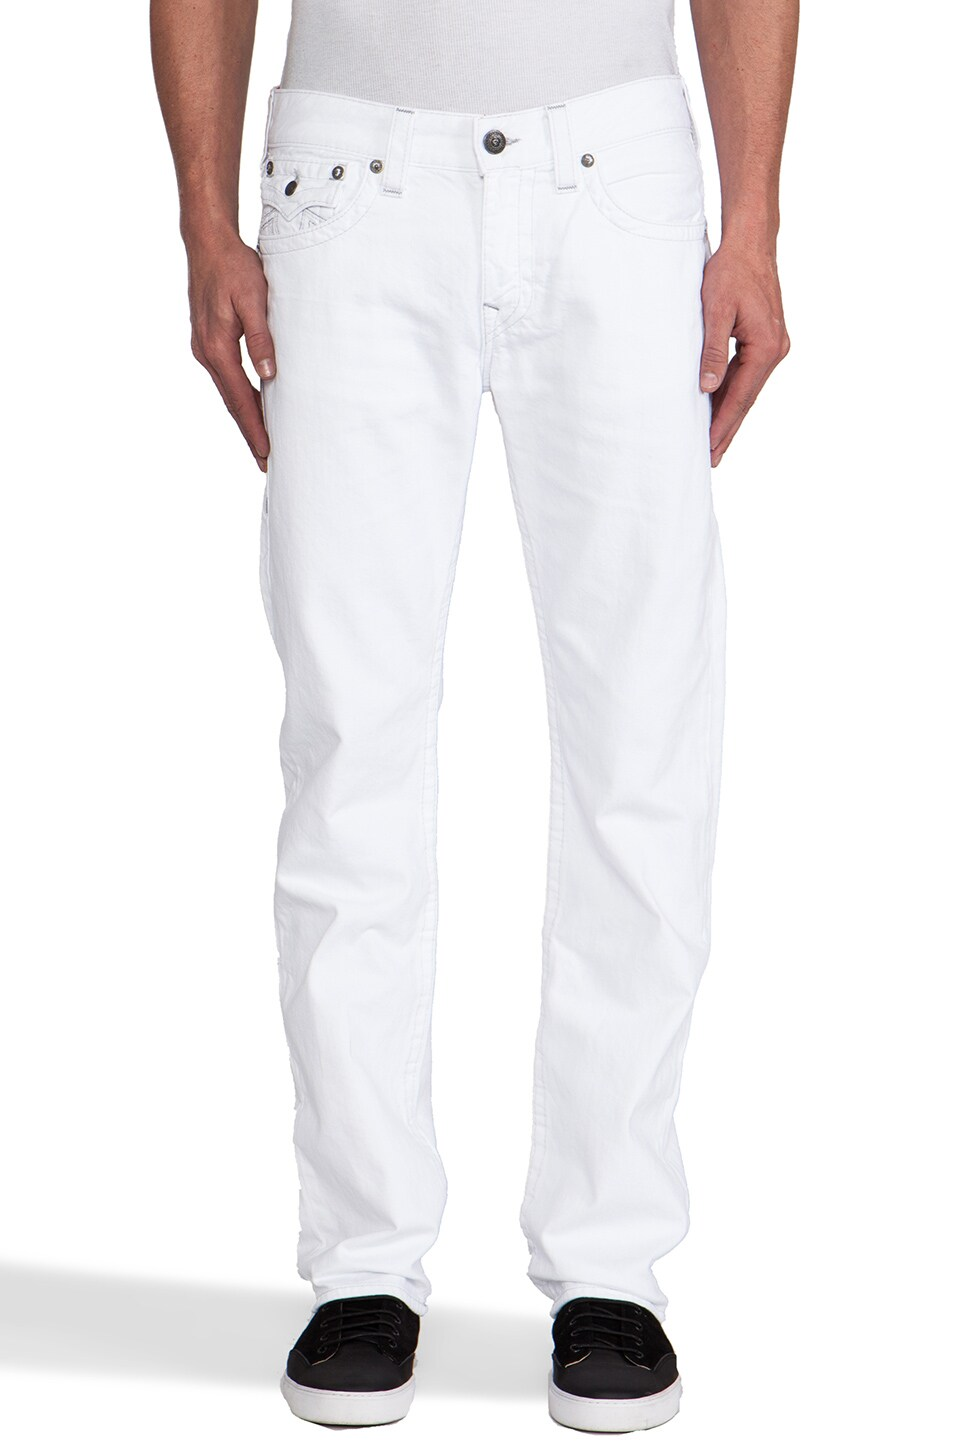 True Religion Ricky in Optic White